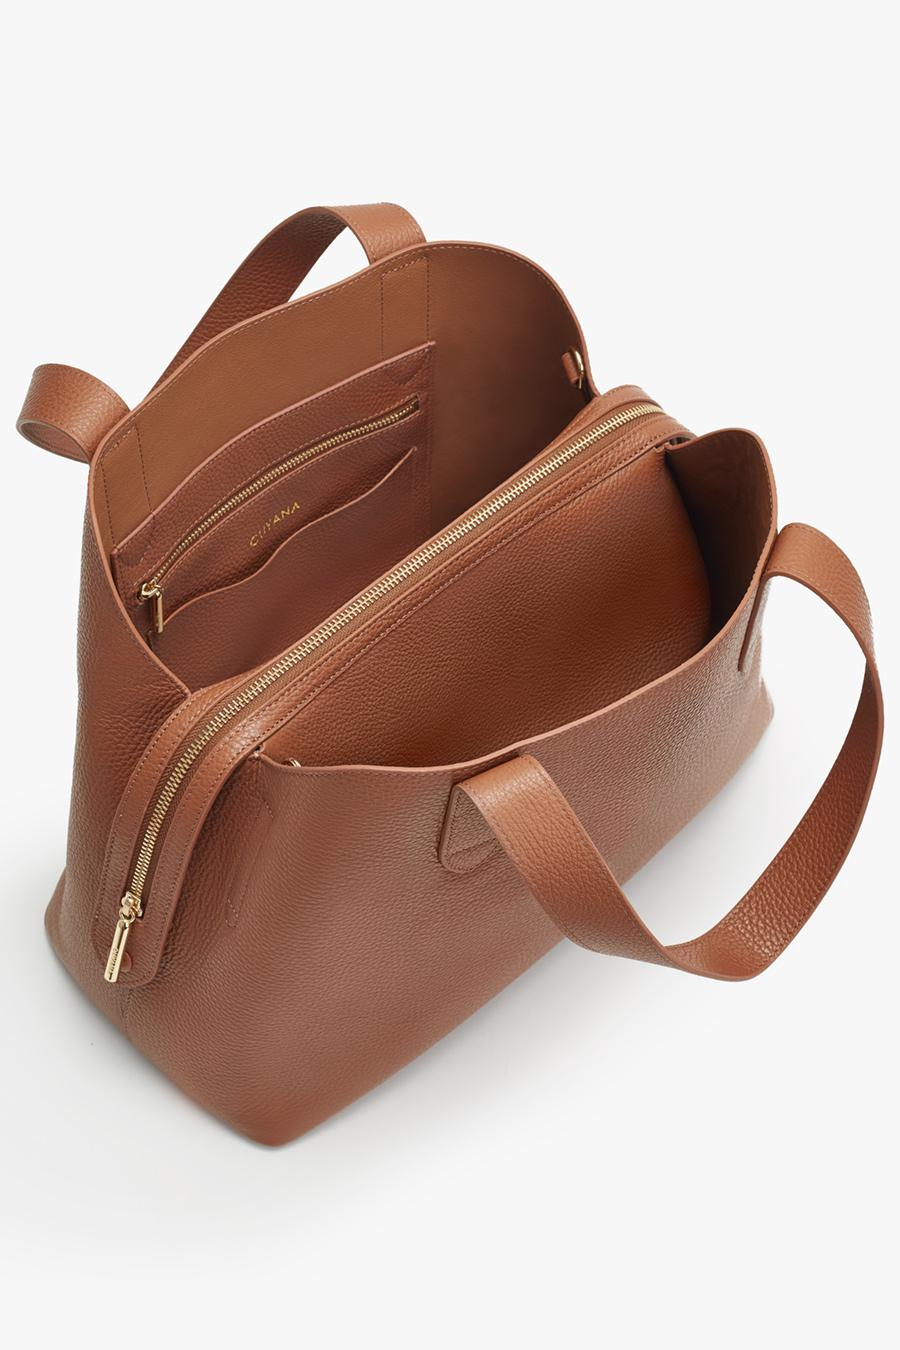 Women's Zippered Satchel Bag in Caramel | Pebbled Leather by Cuyana 1